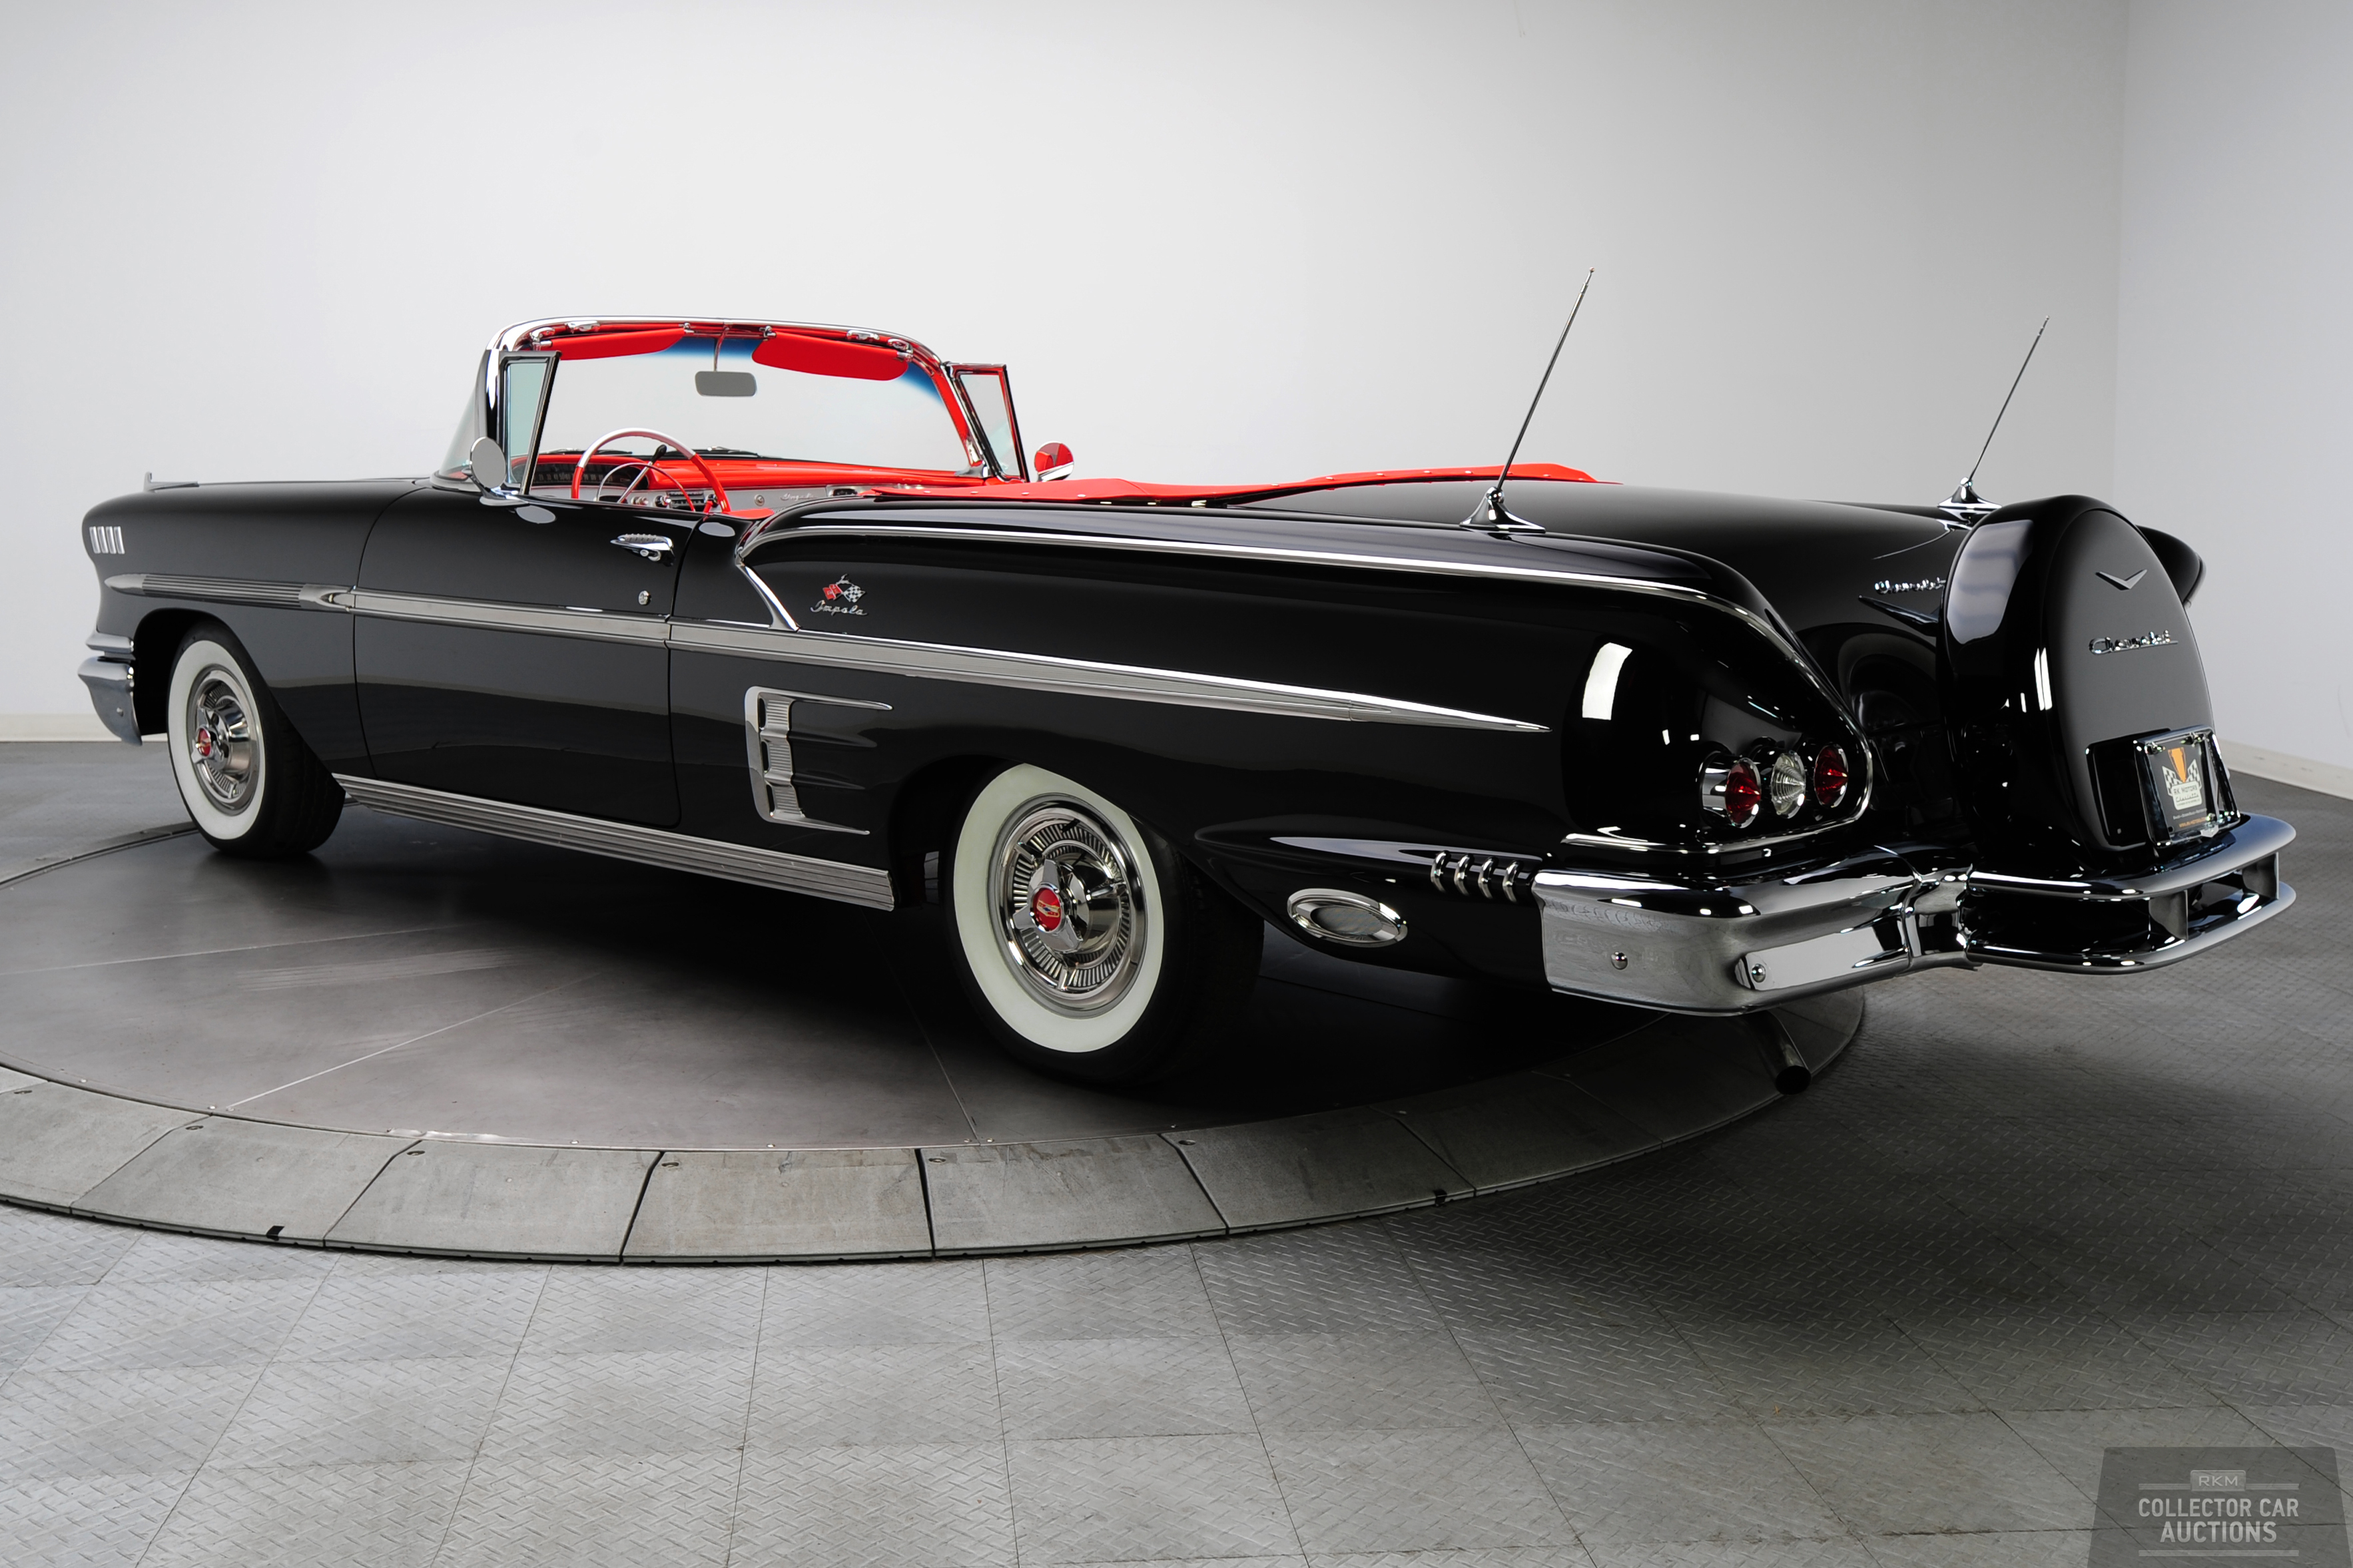 1958 chevrolet impala convertible 348 tri power classic cars r wallpaper 3533x2355 71632 wallpaperup